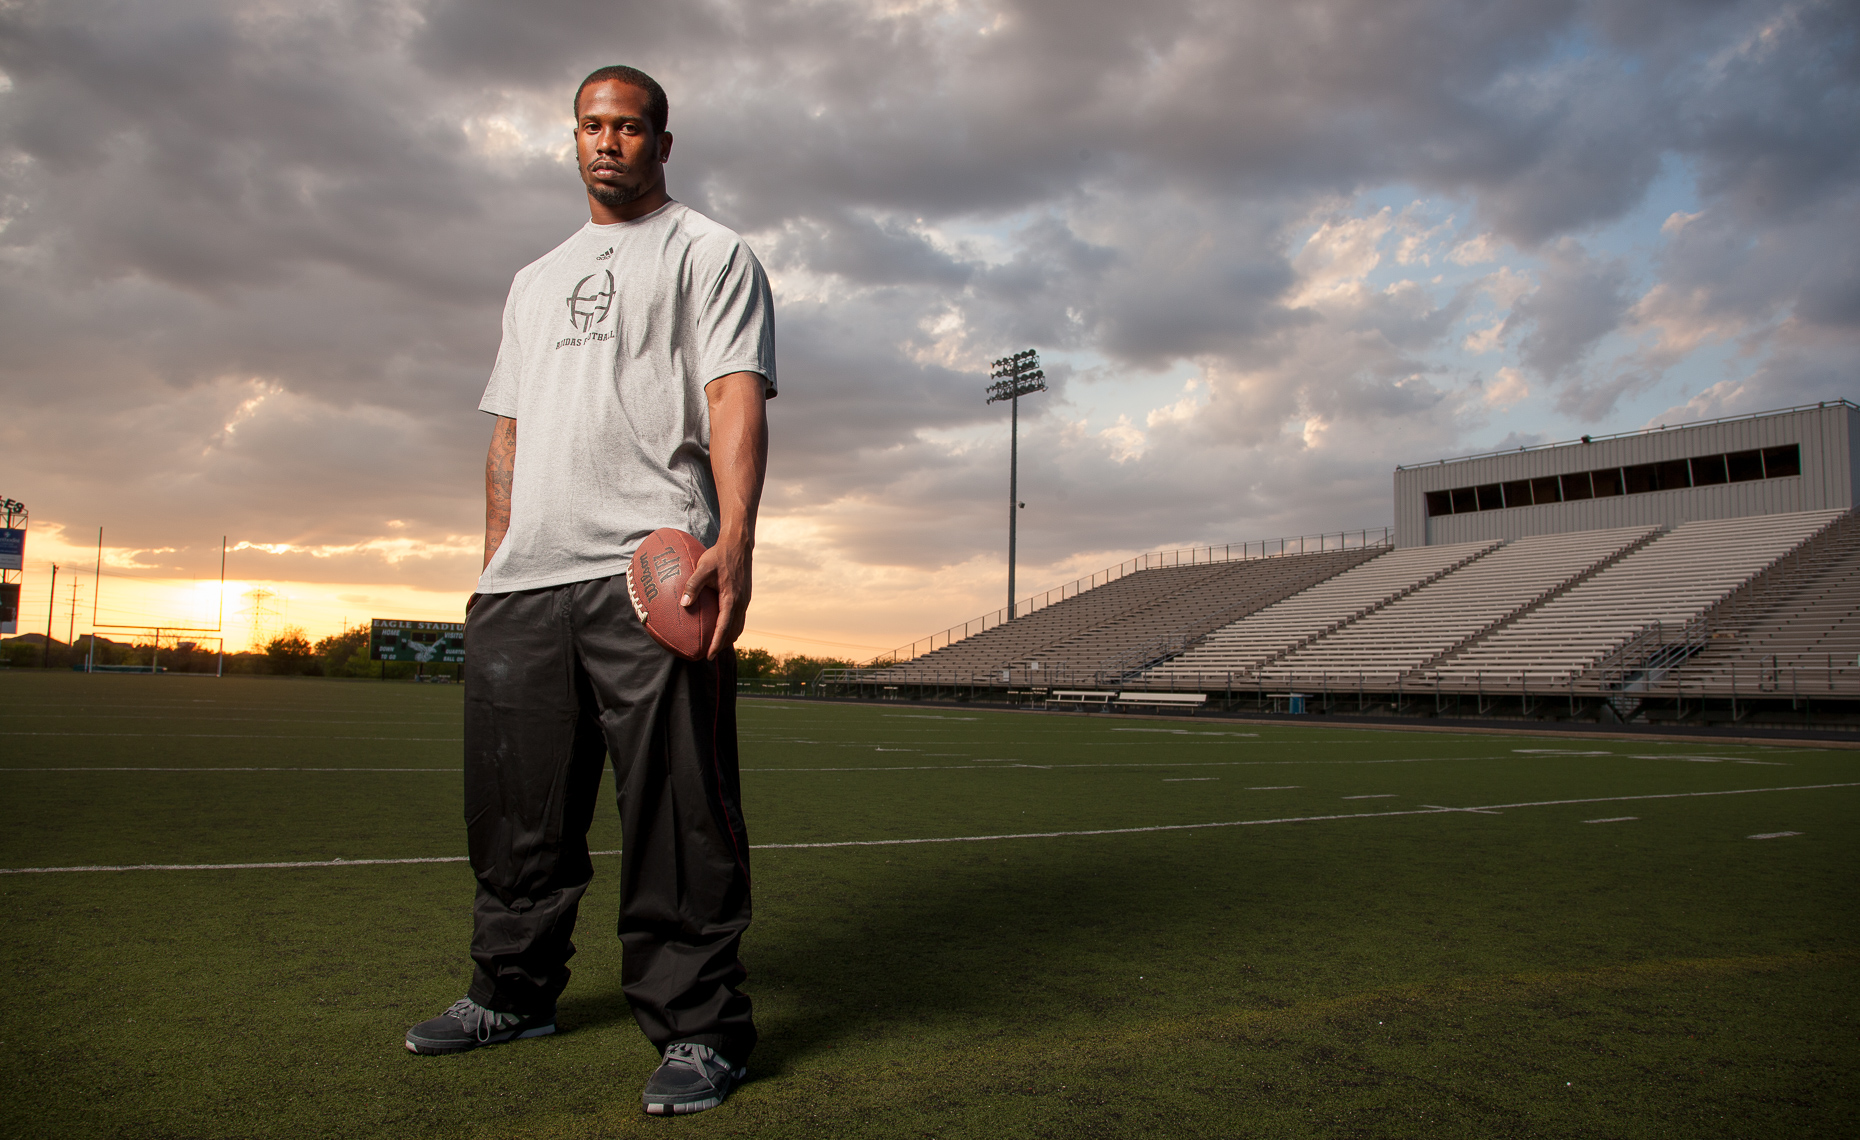 SEALE_WEB_SPORTS_PORTRAIT_VON_MILLER